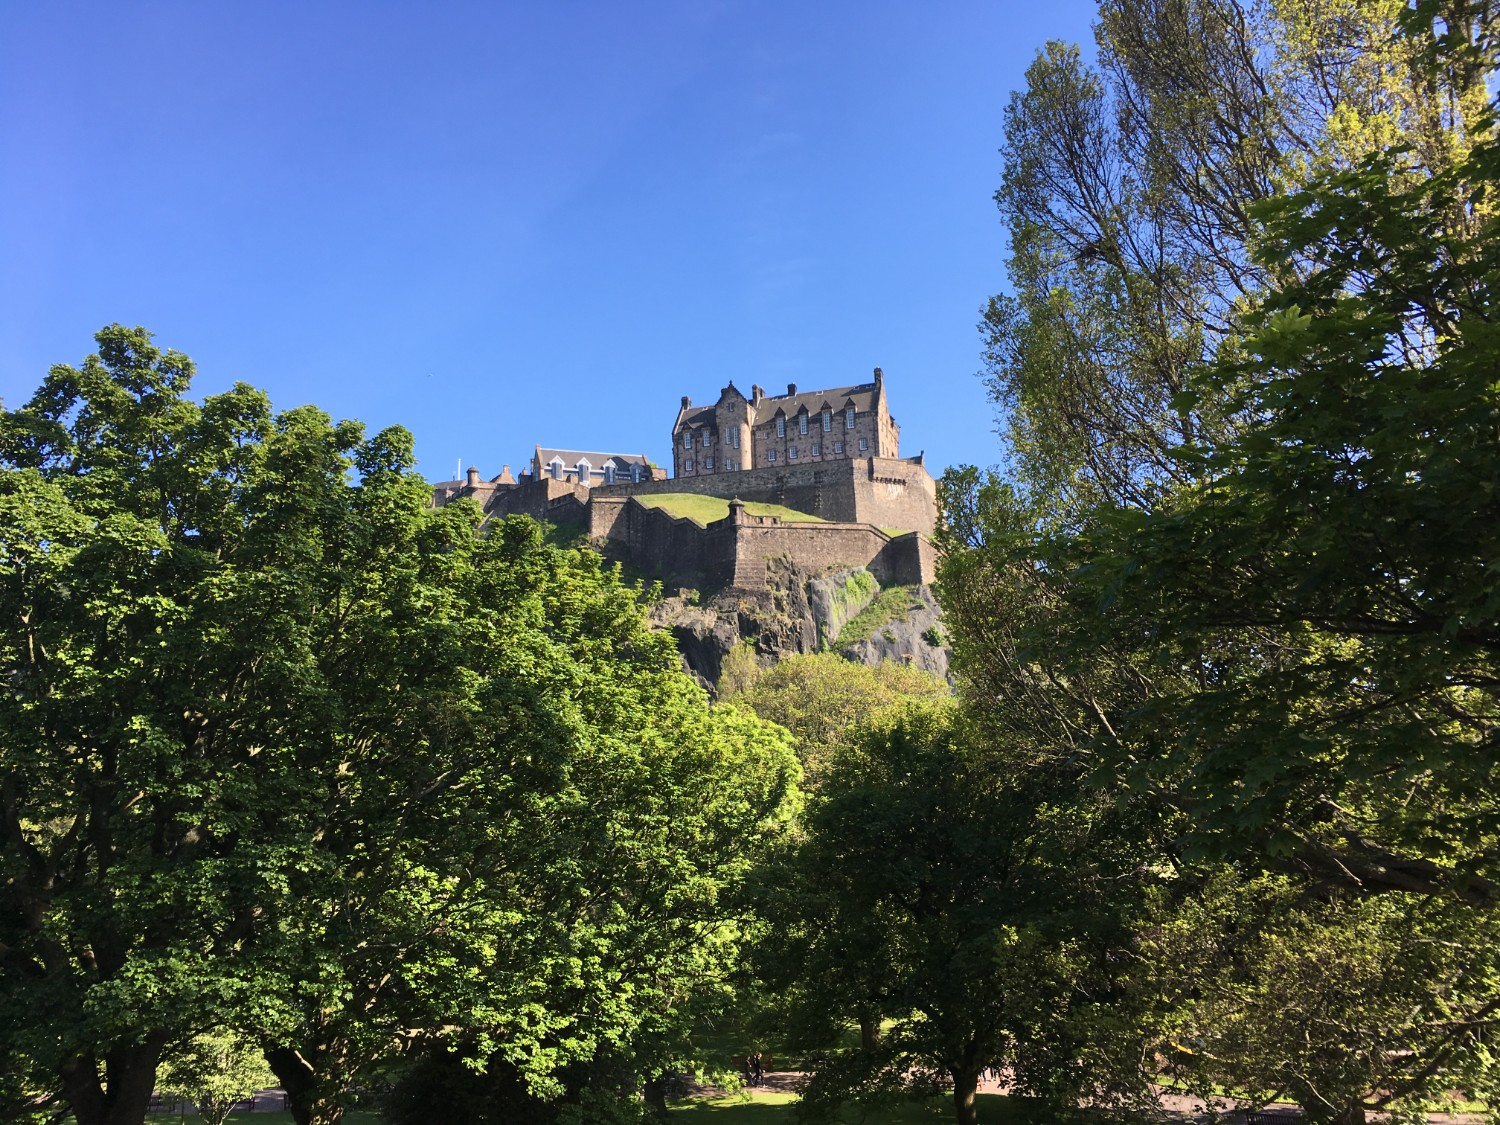 View of Edinburgh Castle against a clear blue sky - tips for planning a trip to Edinburgh from the Wanderful women's travel community